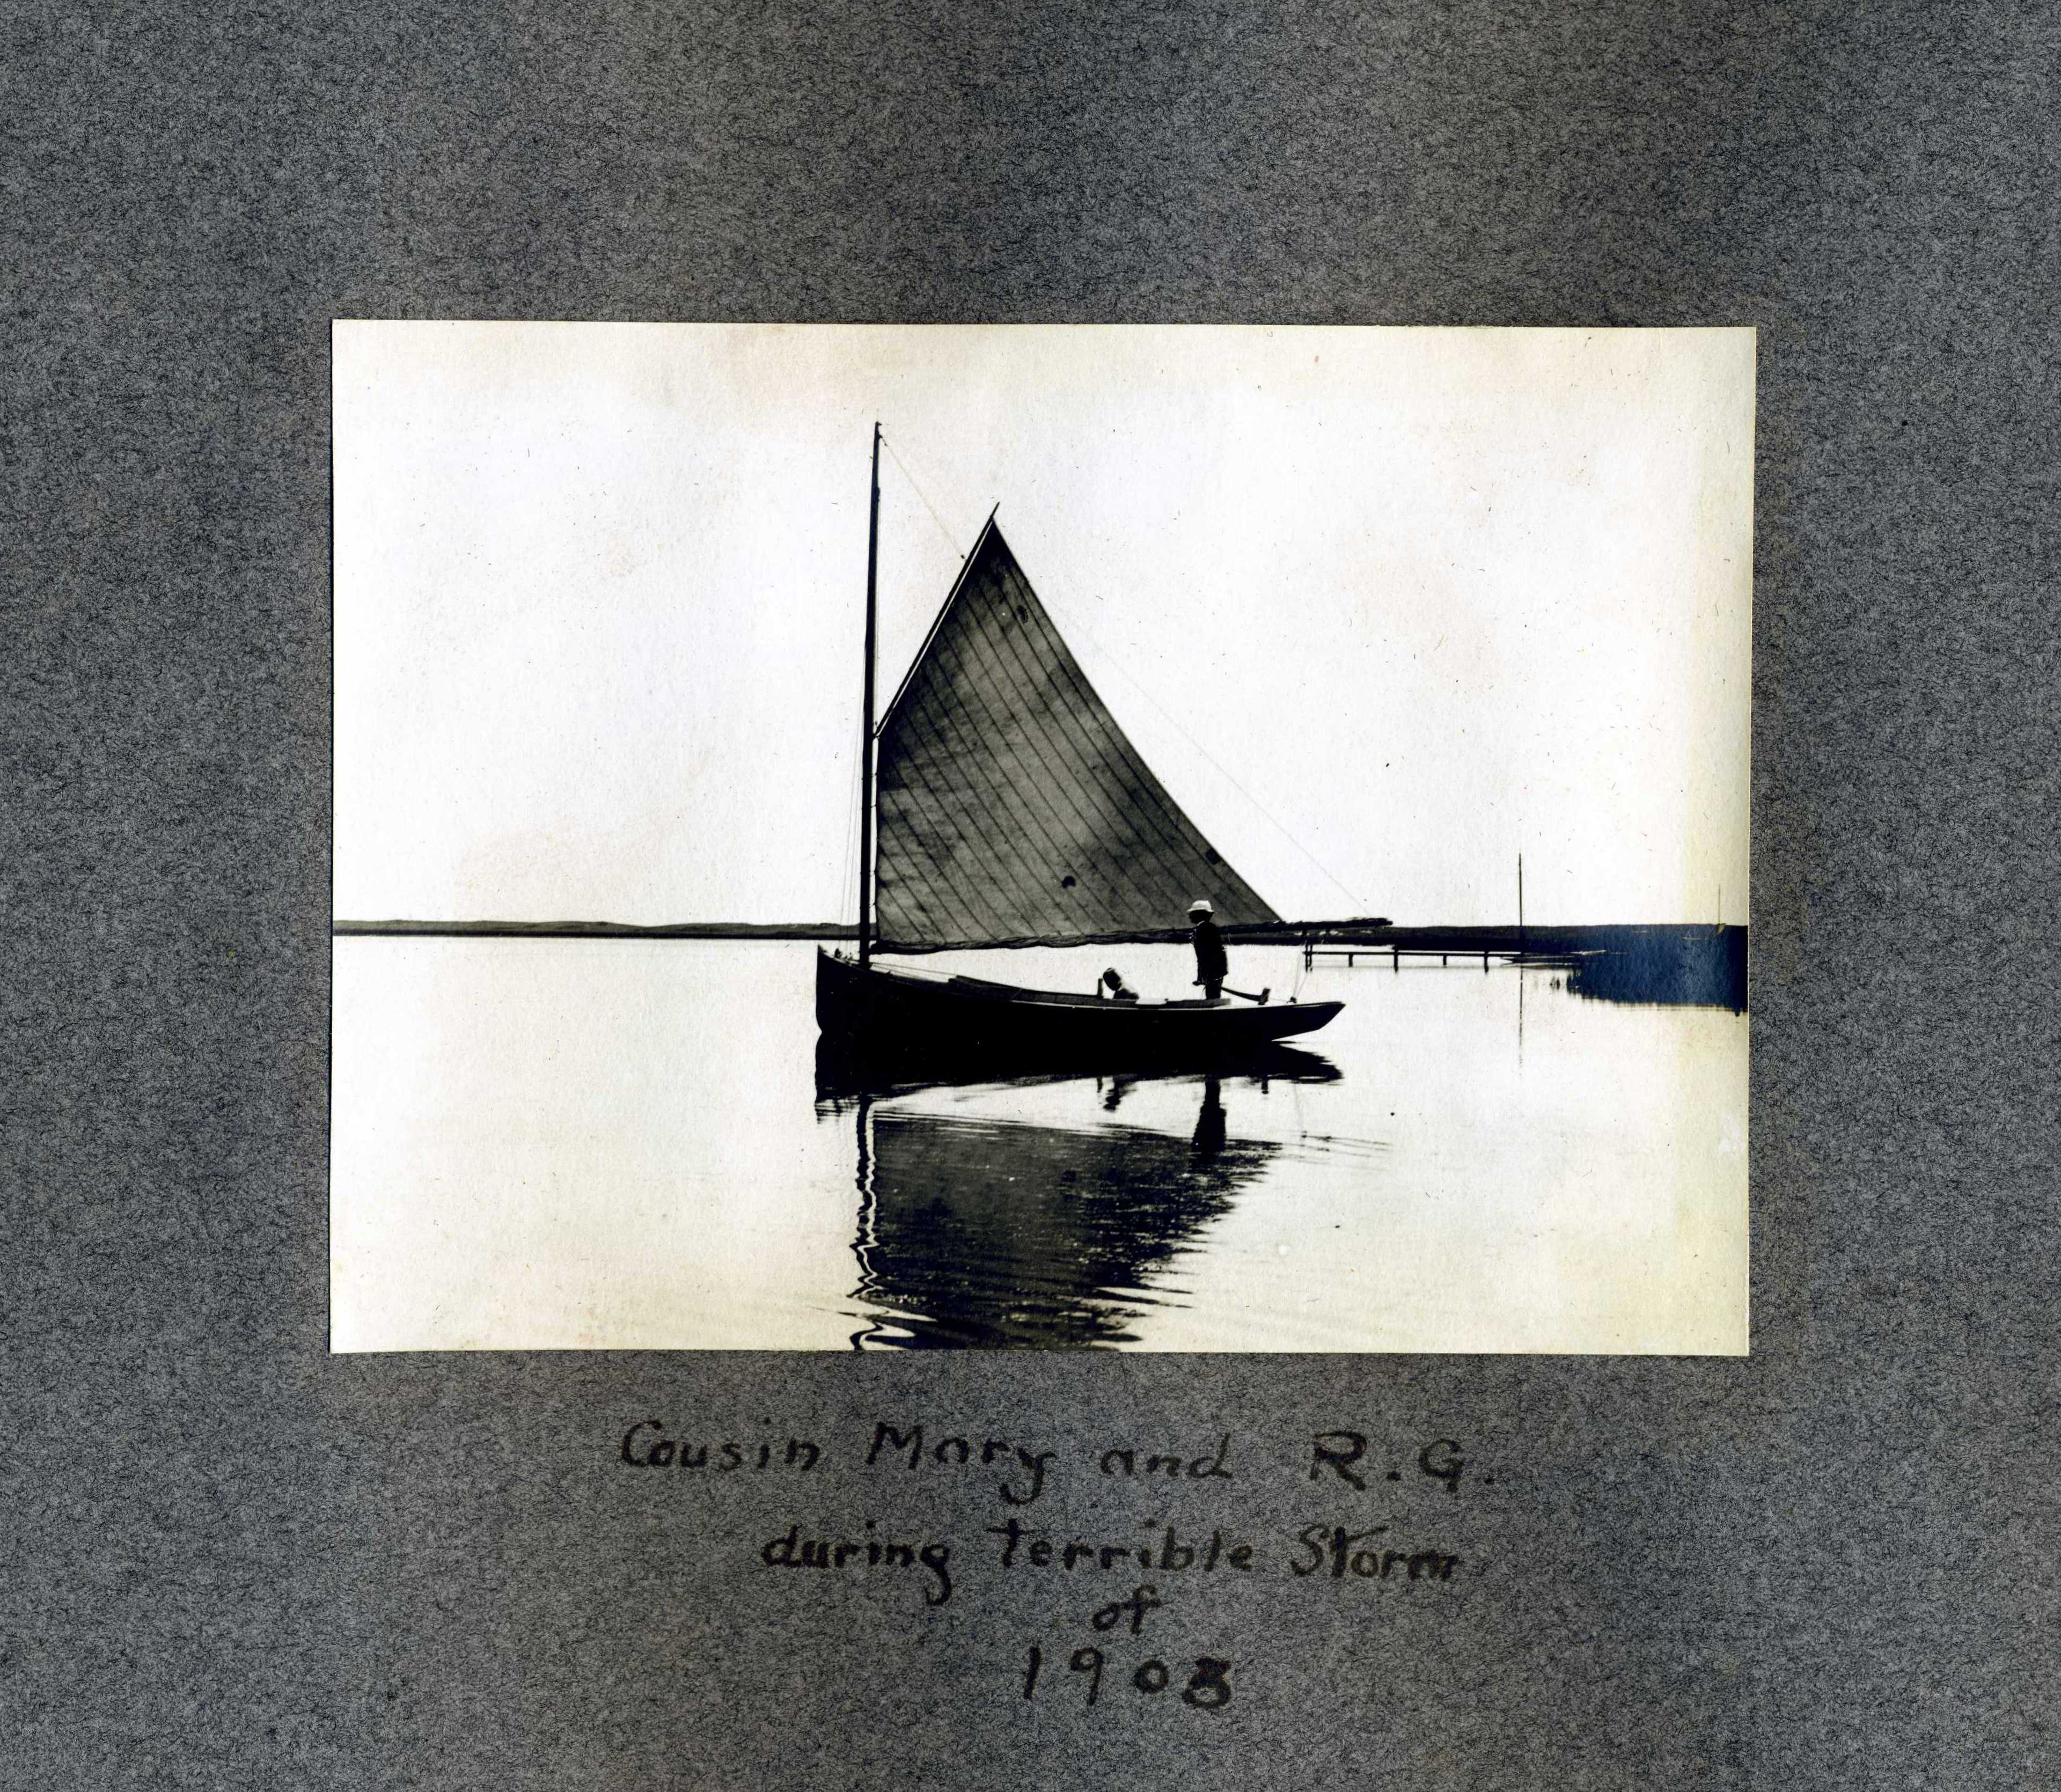 Boat in Still Water with Album Caption